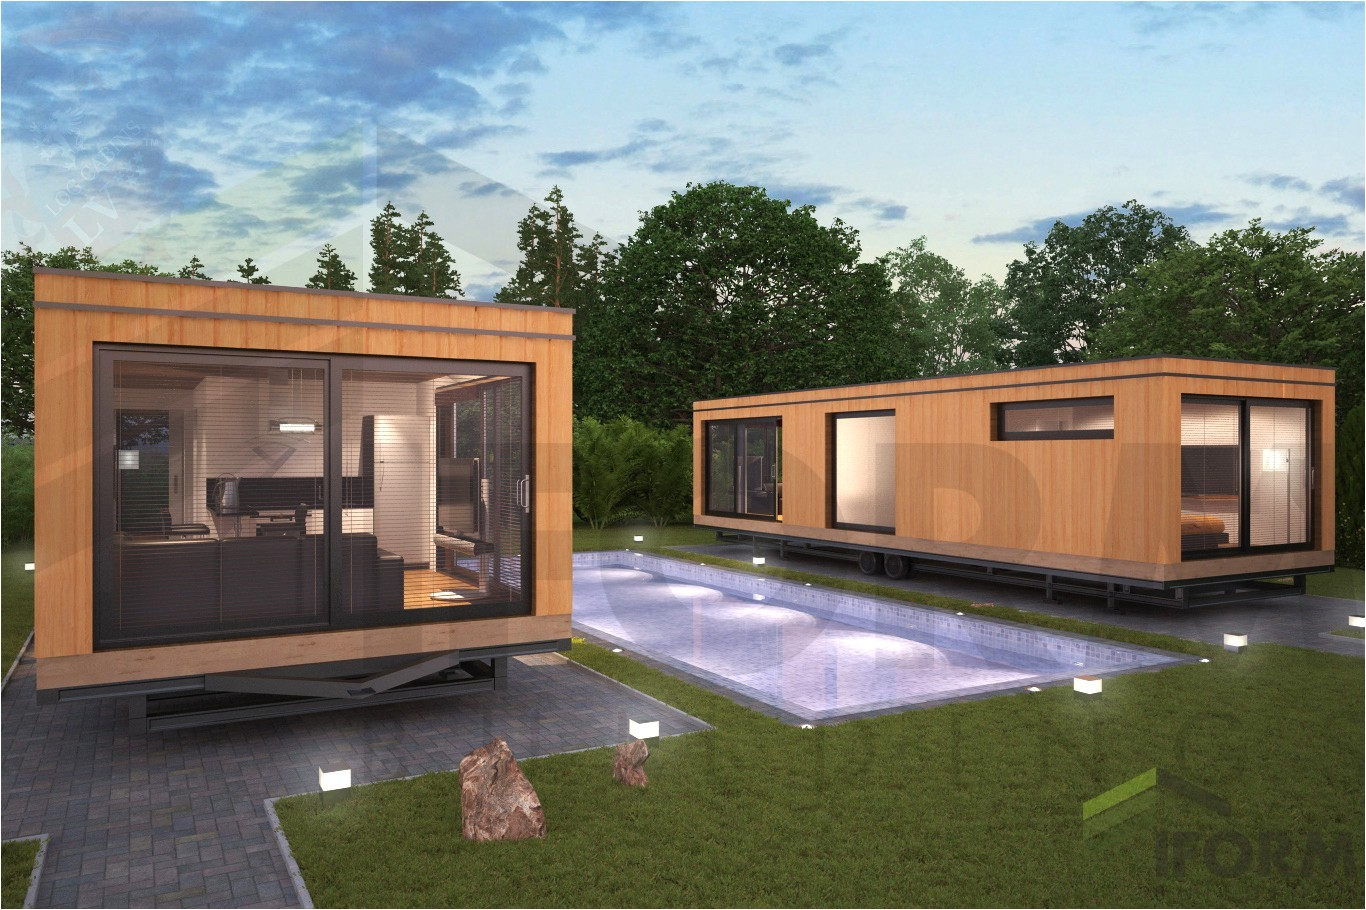 do you need planning permission for mobile home